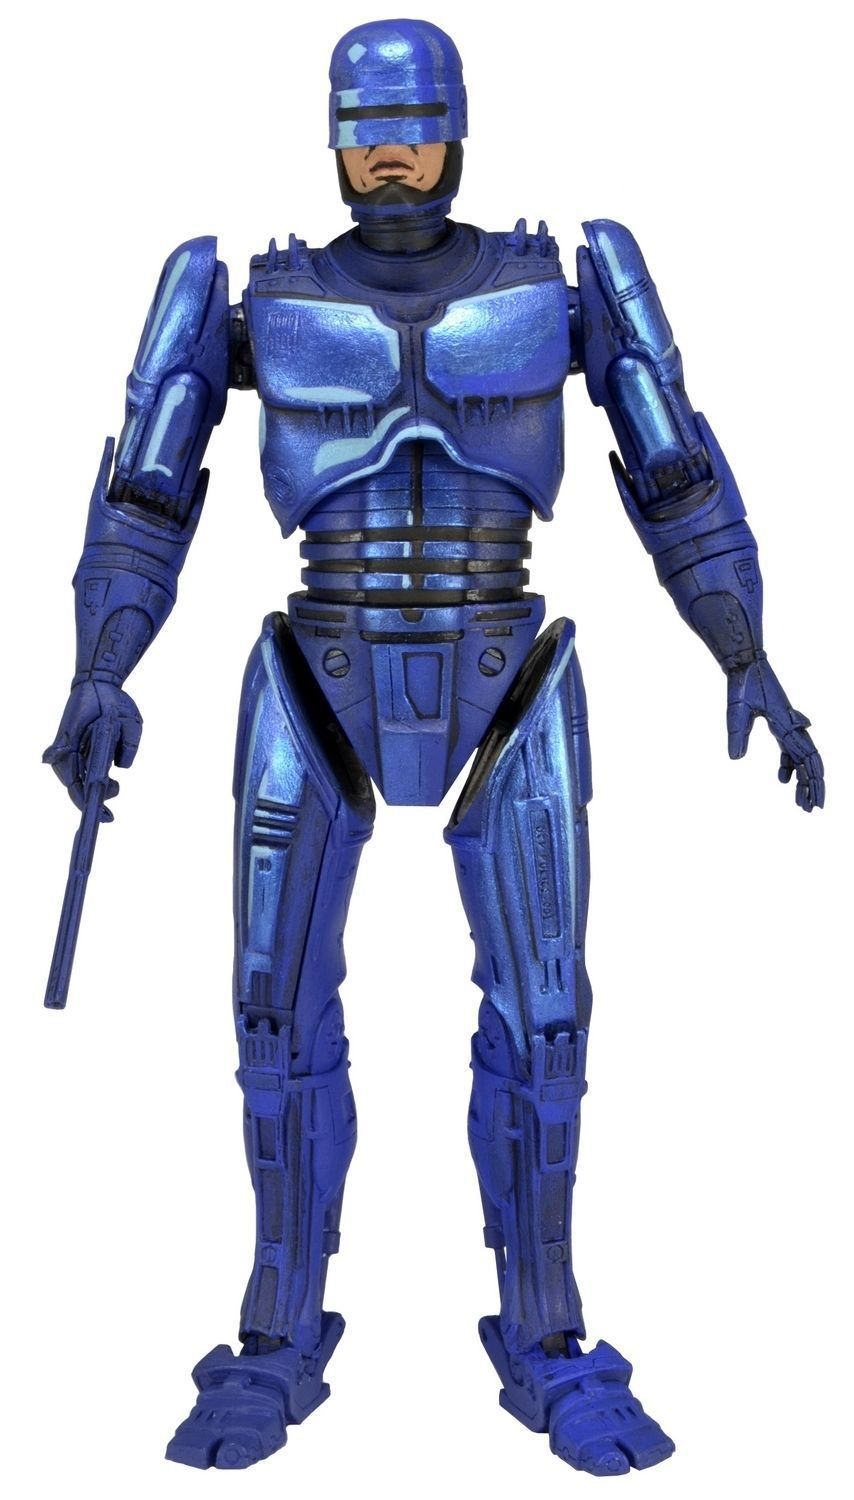 """Free Shipping NECA 7"""" Robocop Classic 1987 Video Game Appearance Action Figure Collectible Model Toy MVFG144(China (Mainland))"""